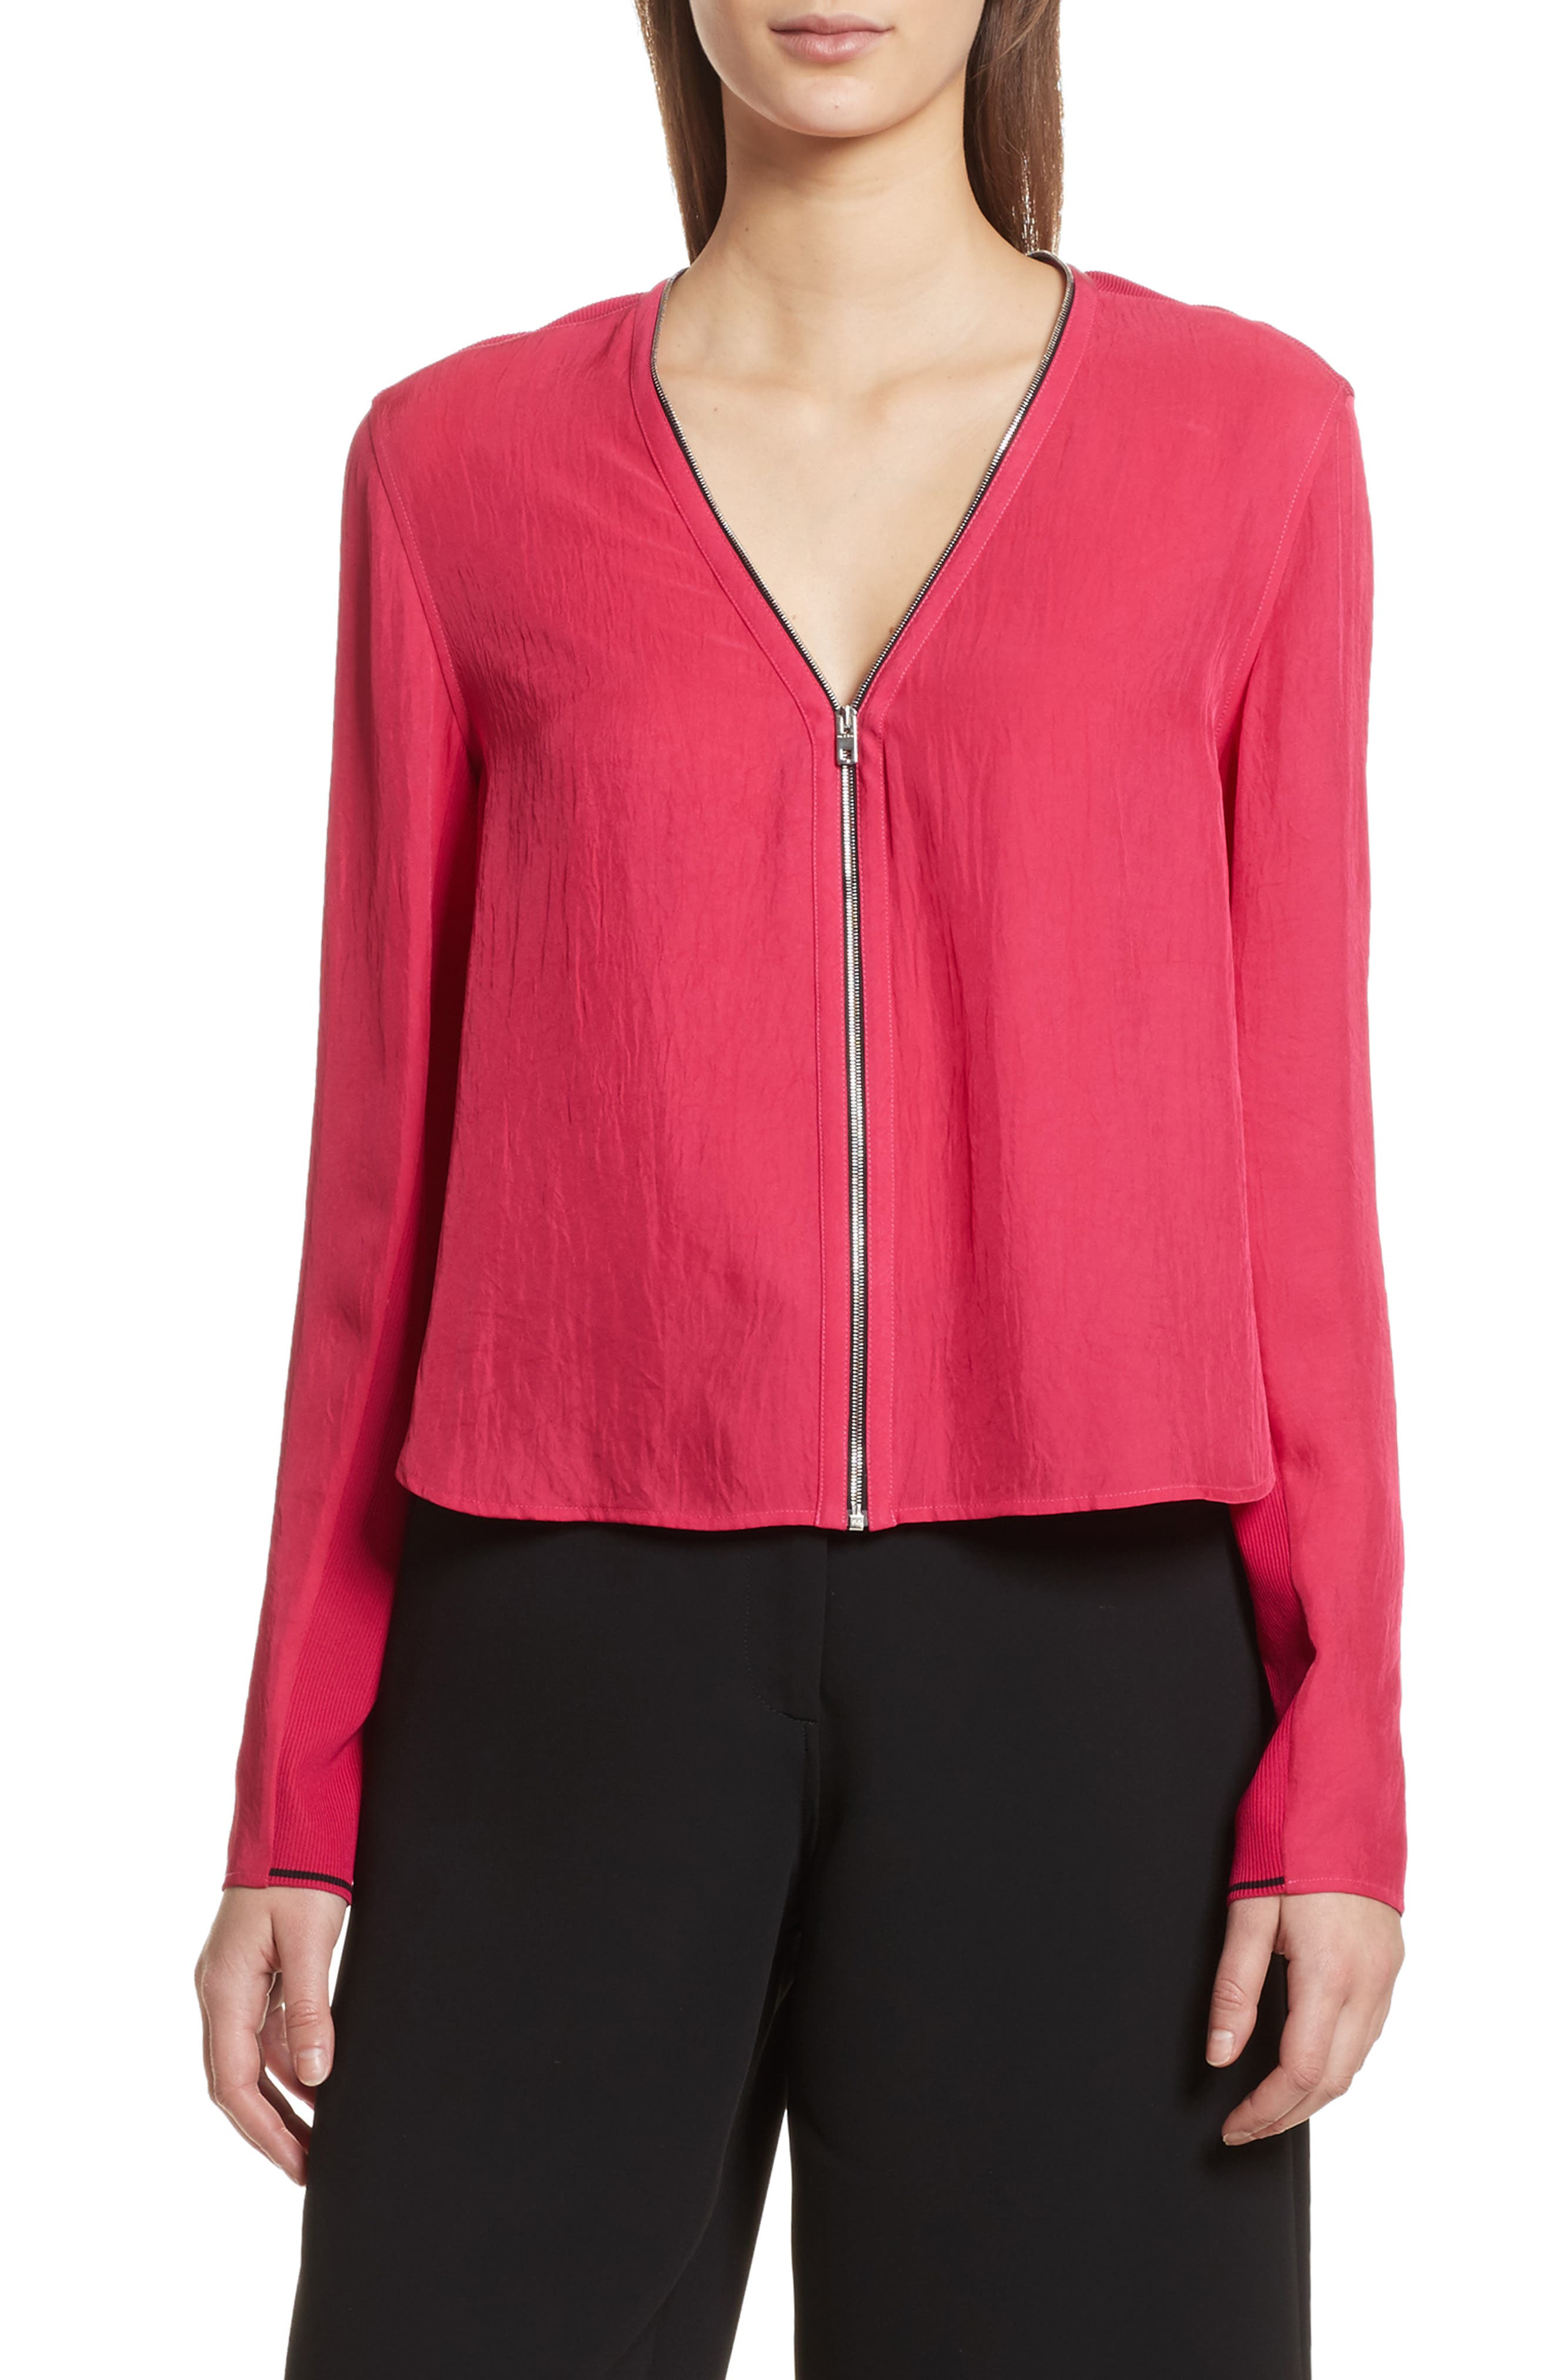 Vanessa Zip Front Blouse,                             Main thumbnail 1, color,                             Bright Rose